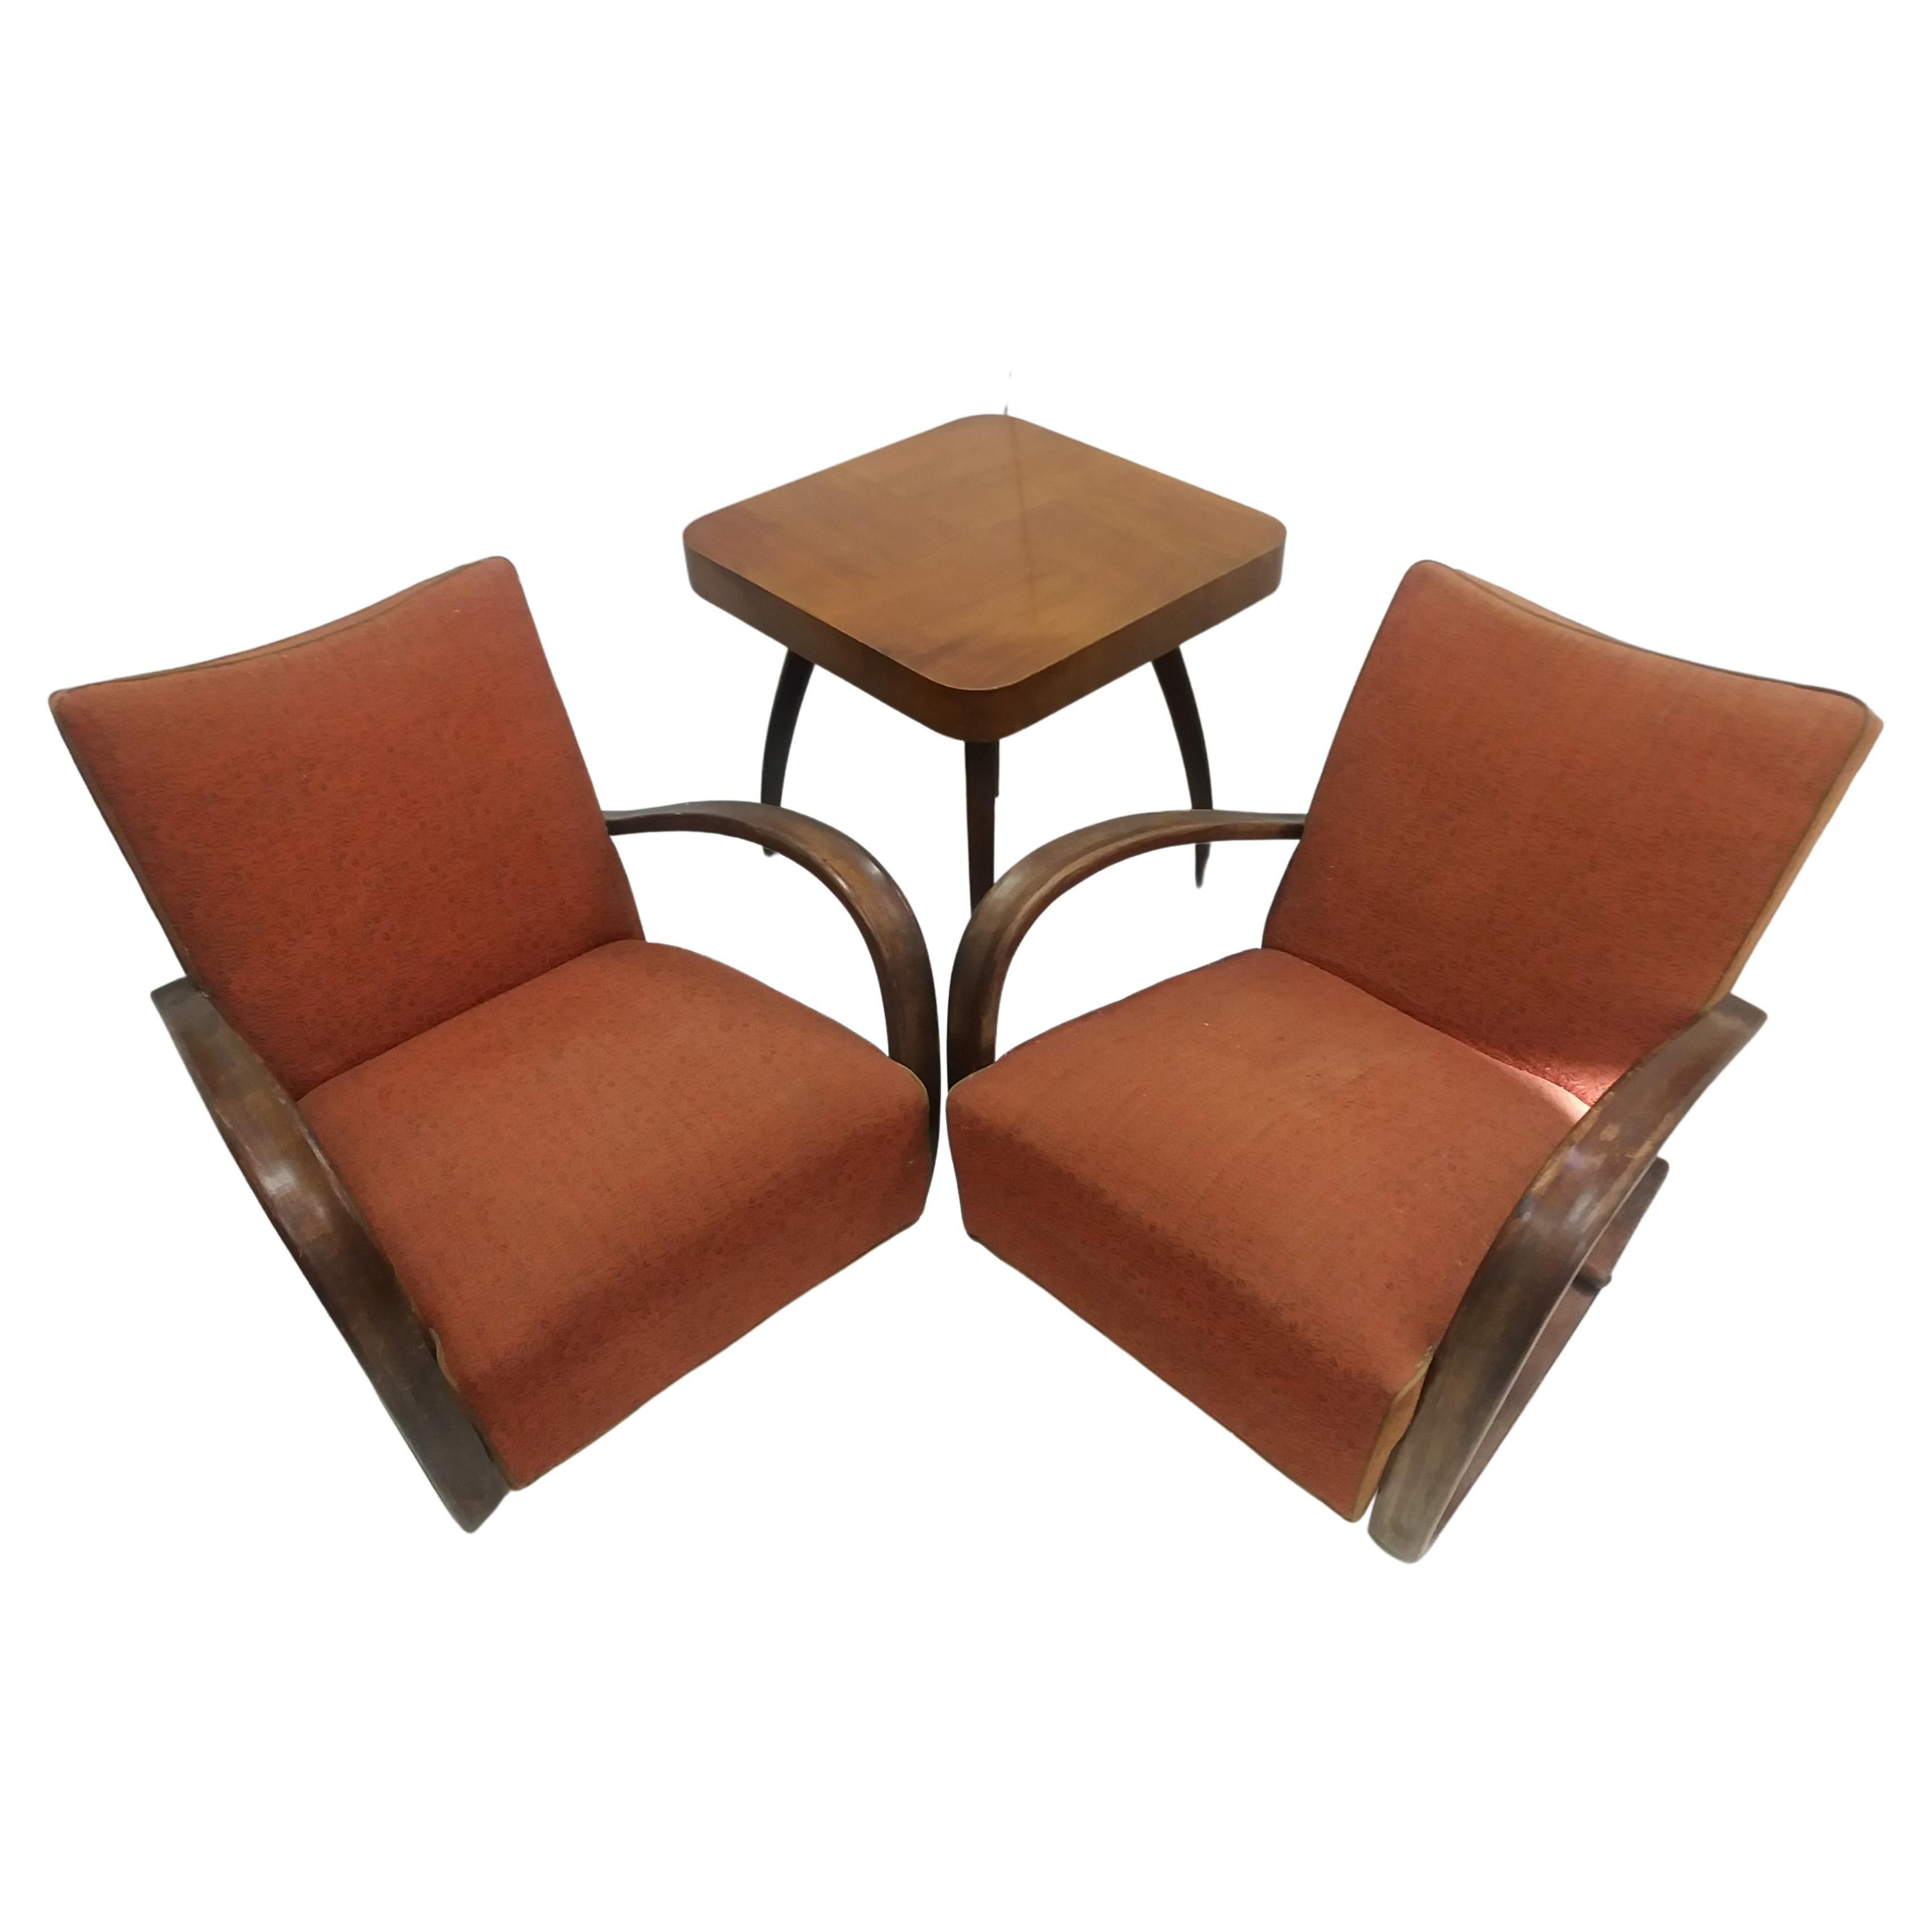 1930 Pair of Armchairs + Spider Table, by Halabala for Thonet, Czechoslovakia